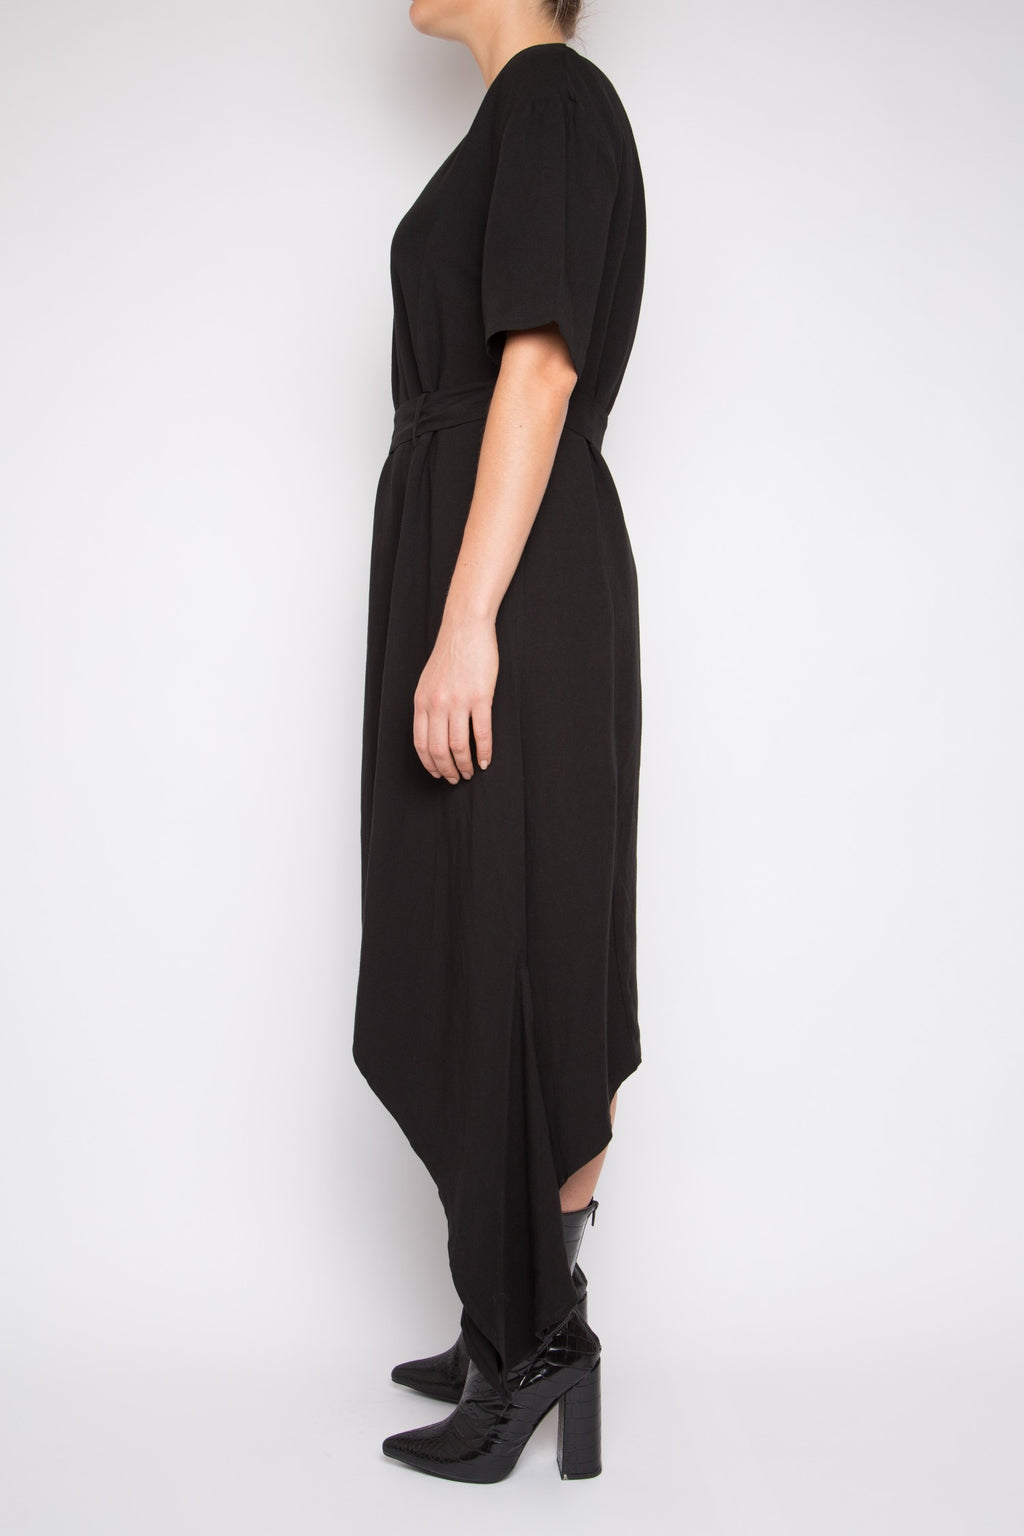 Sanhu Dress in Black